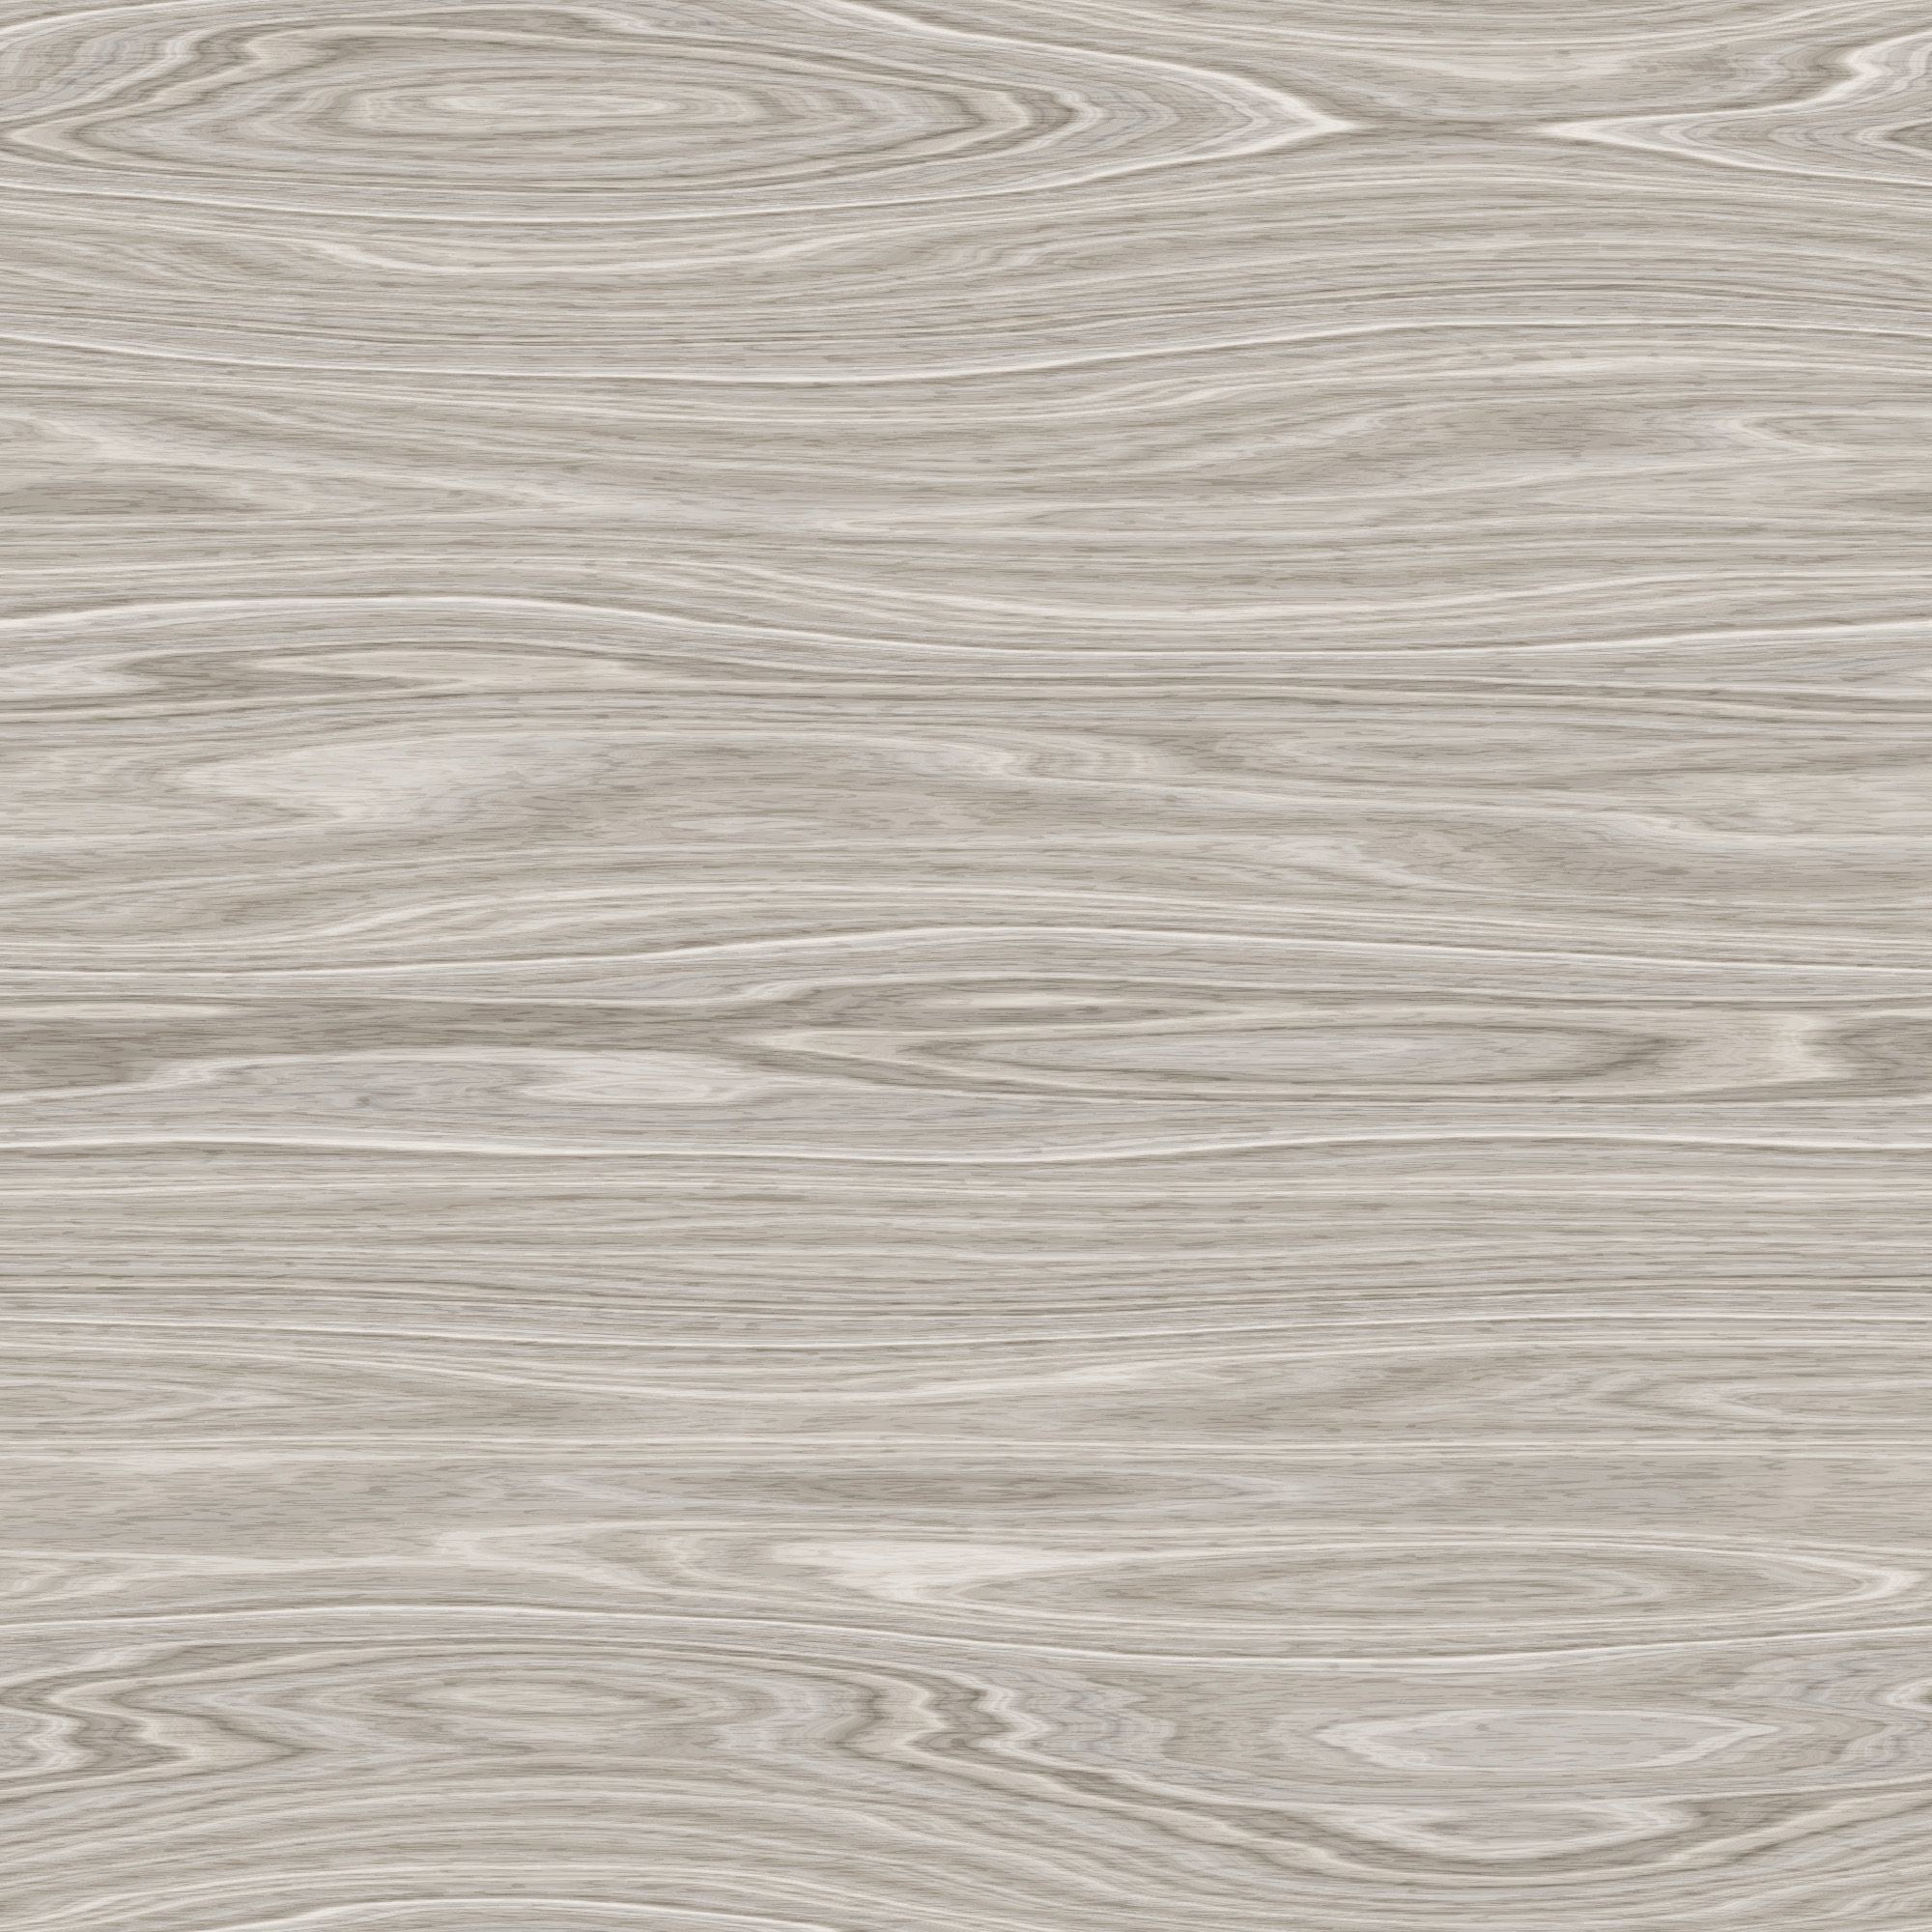 Another Gray Seamless Wooden Texture Httpwww